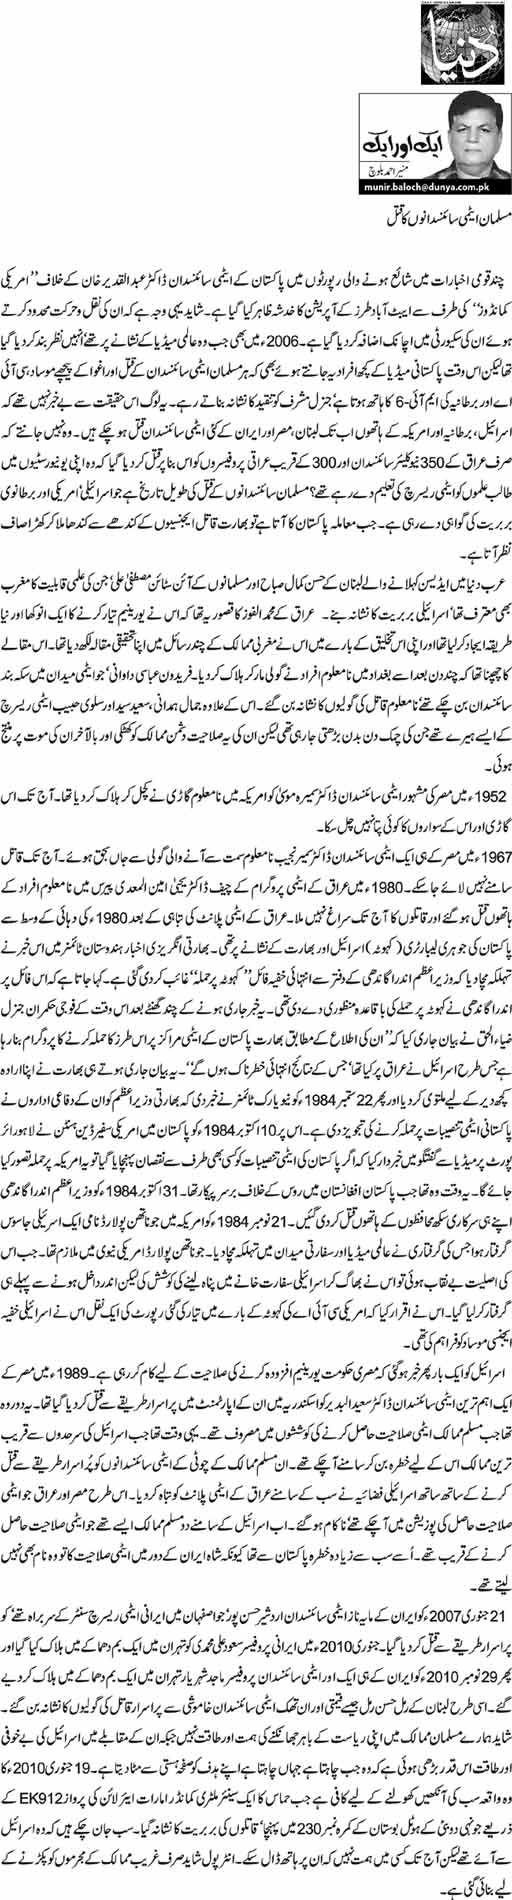 Muslim Scientists Ka Qatal By Munir Ahmed Baloch